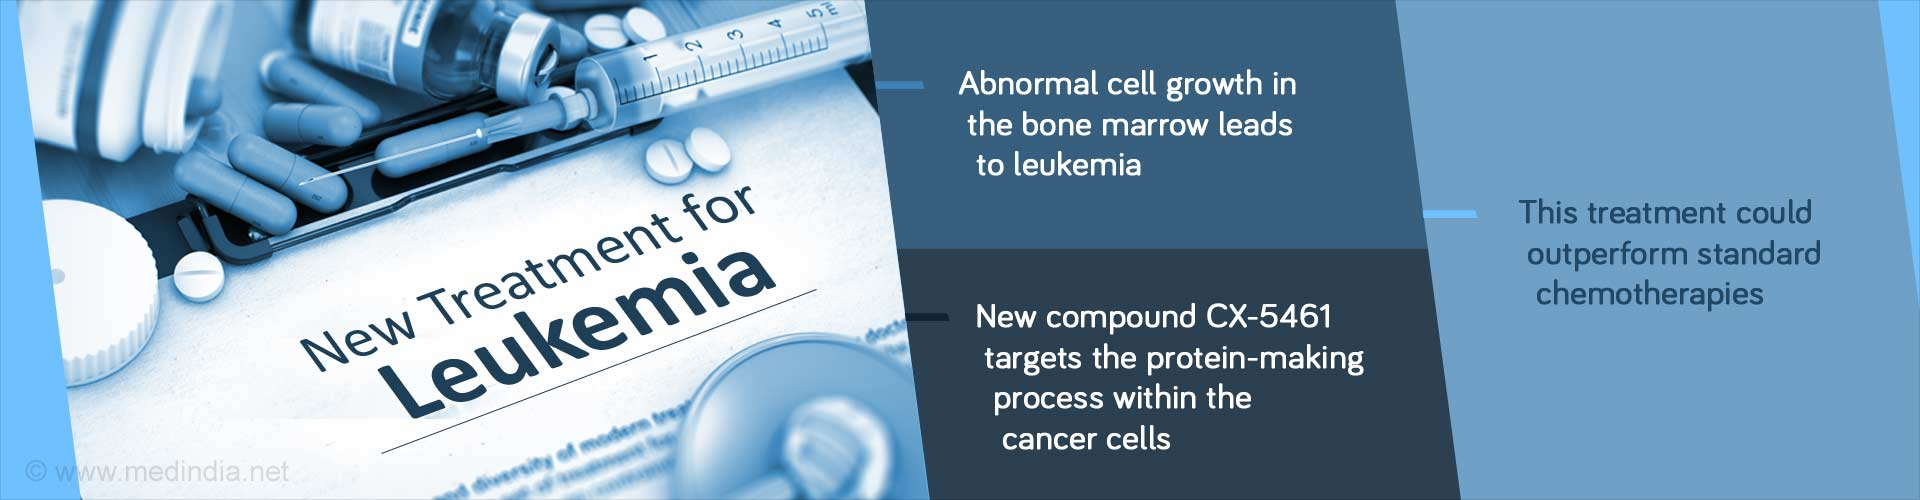 New Treatment for Leukemia